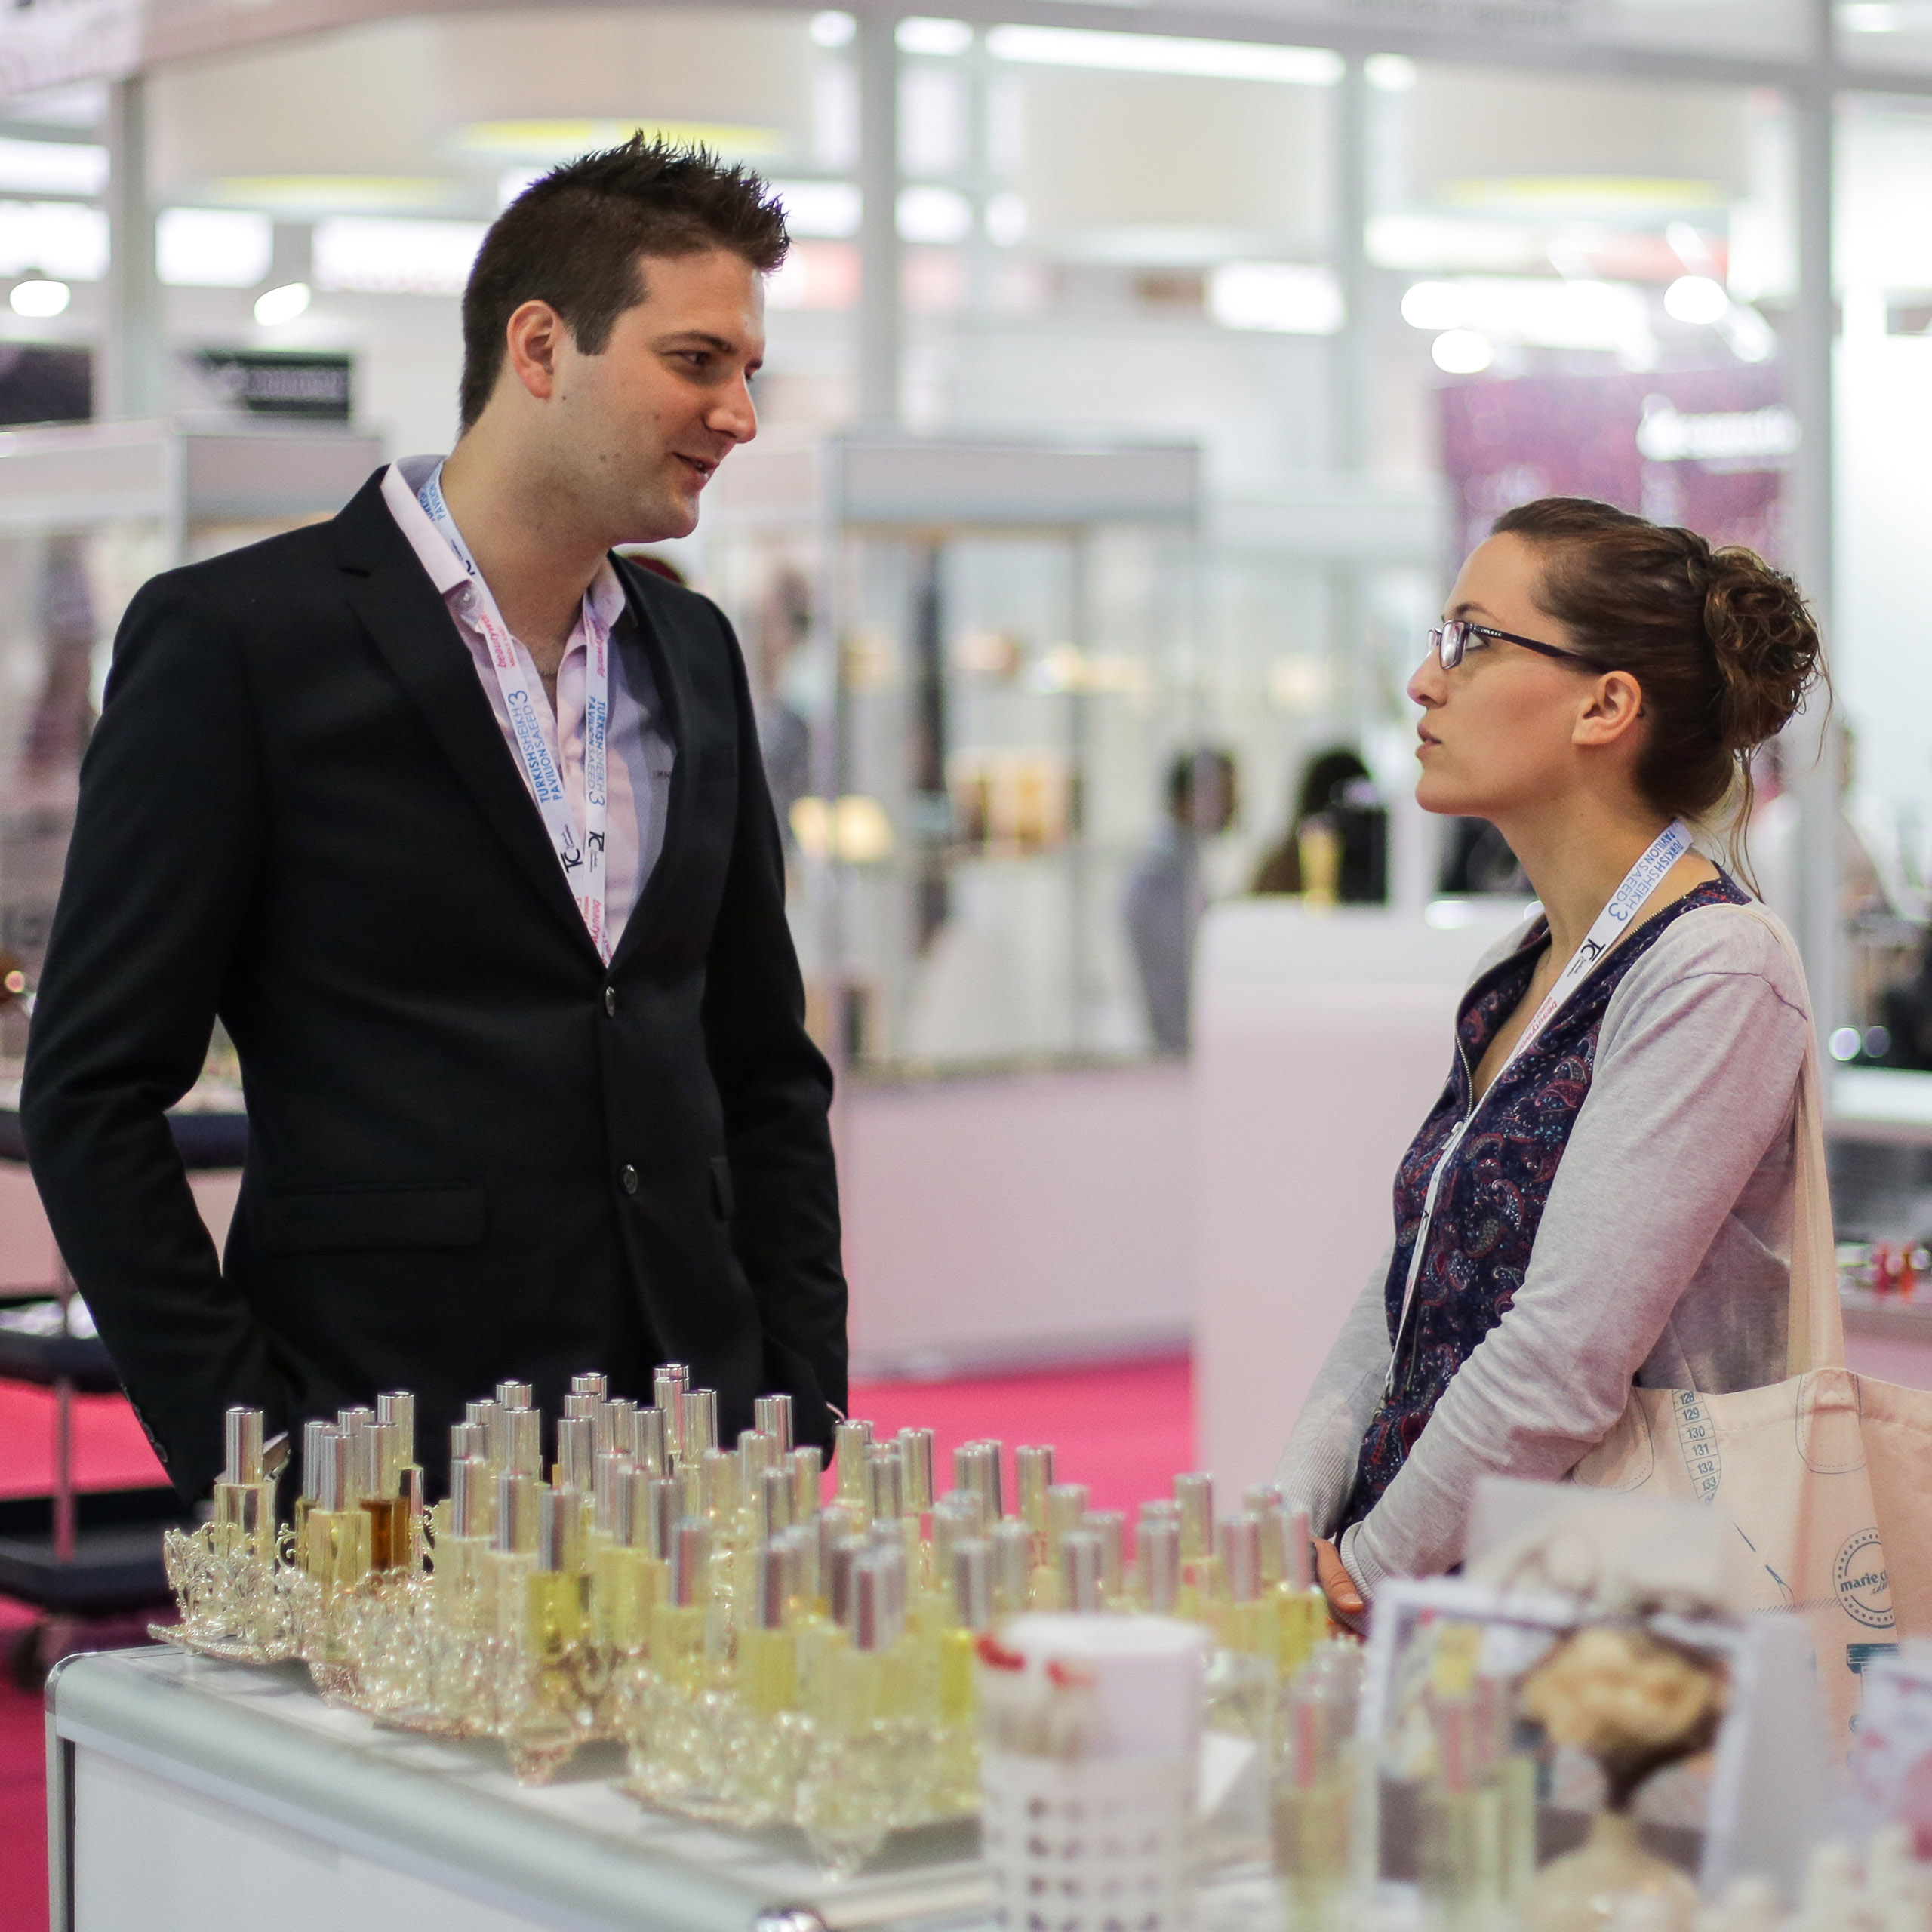 International fragrance houses look to Middle East as inspiration for global perfume trends